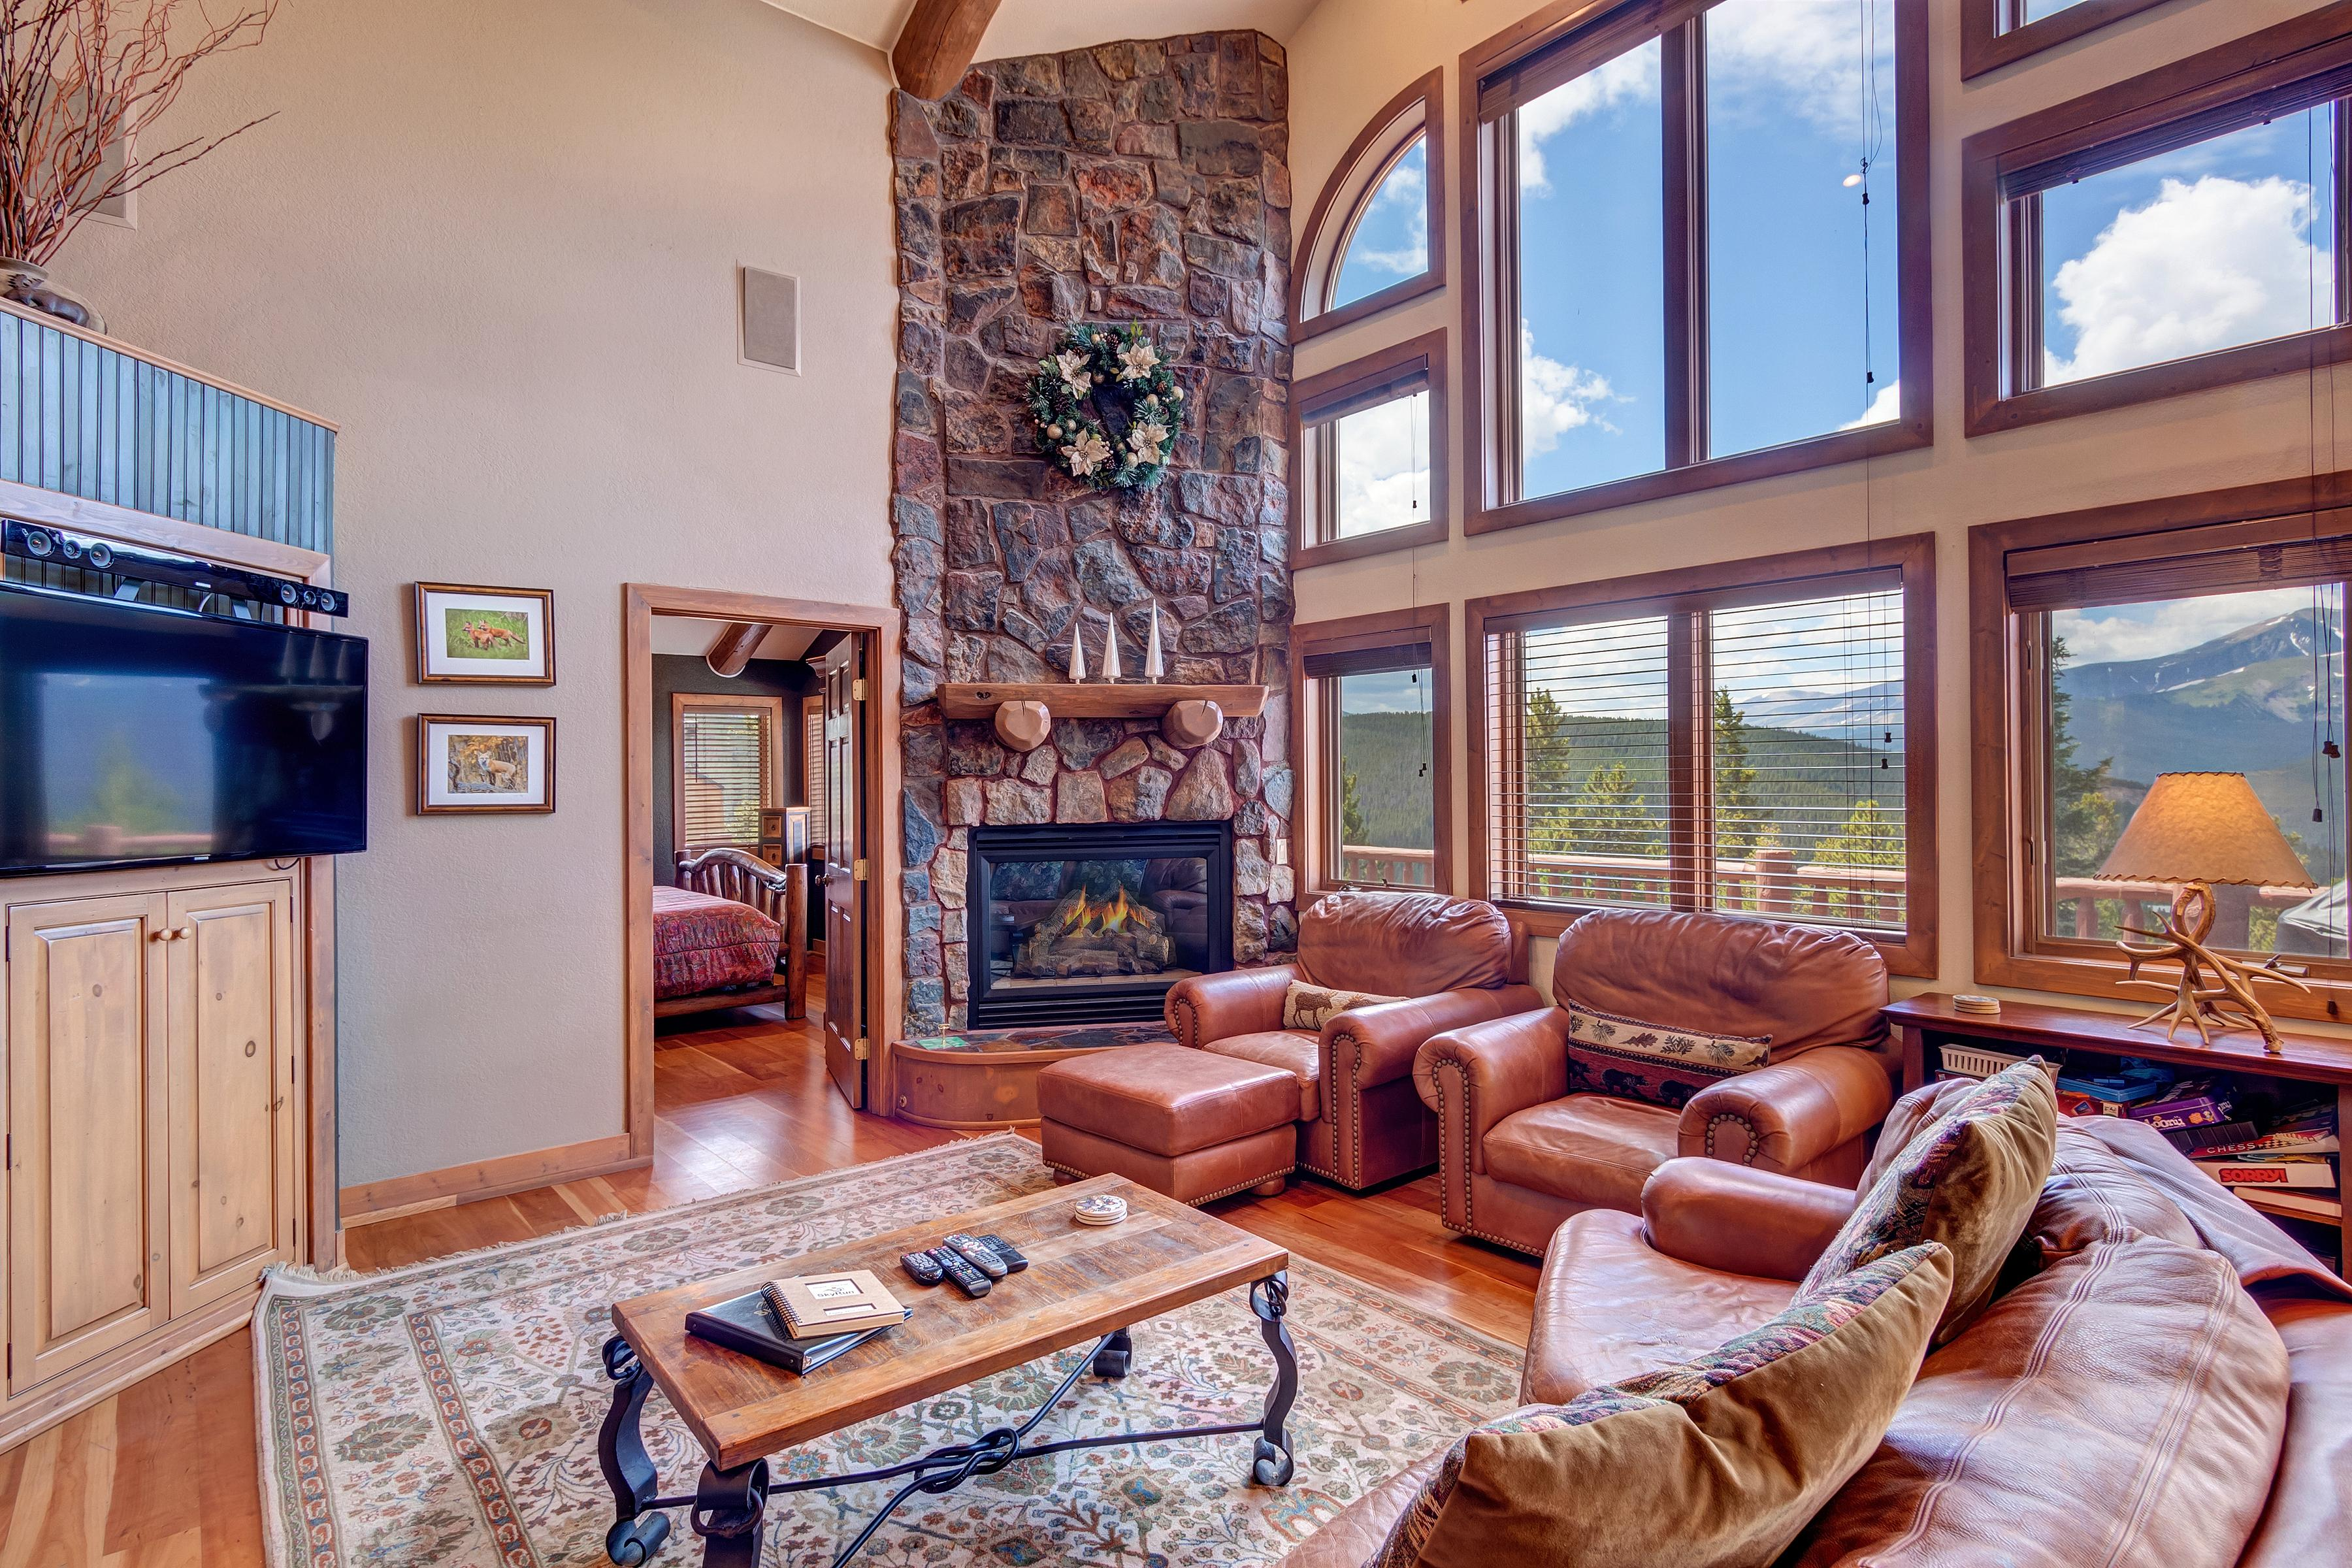 Large spacious home with ski resort views and hot tub